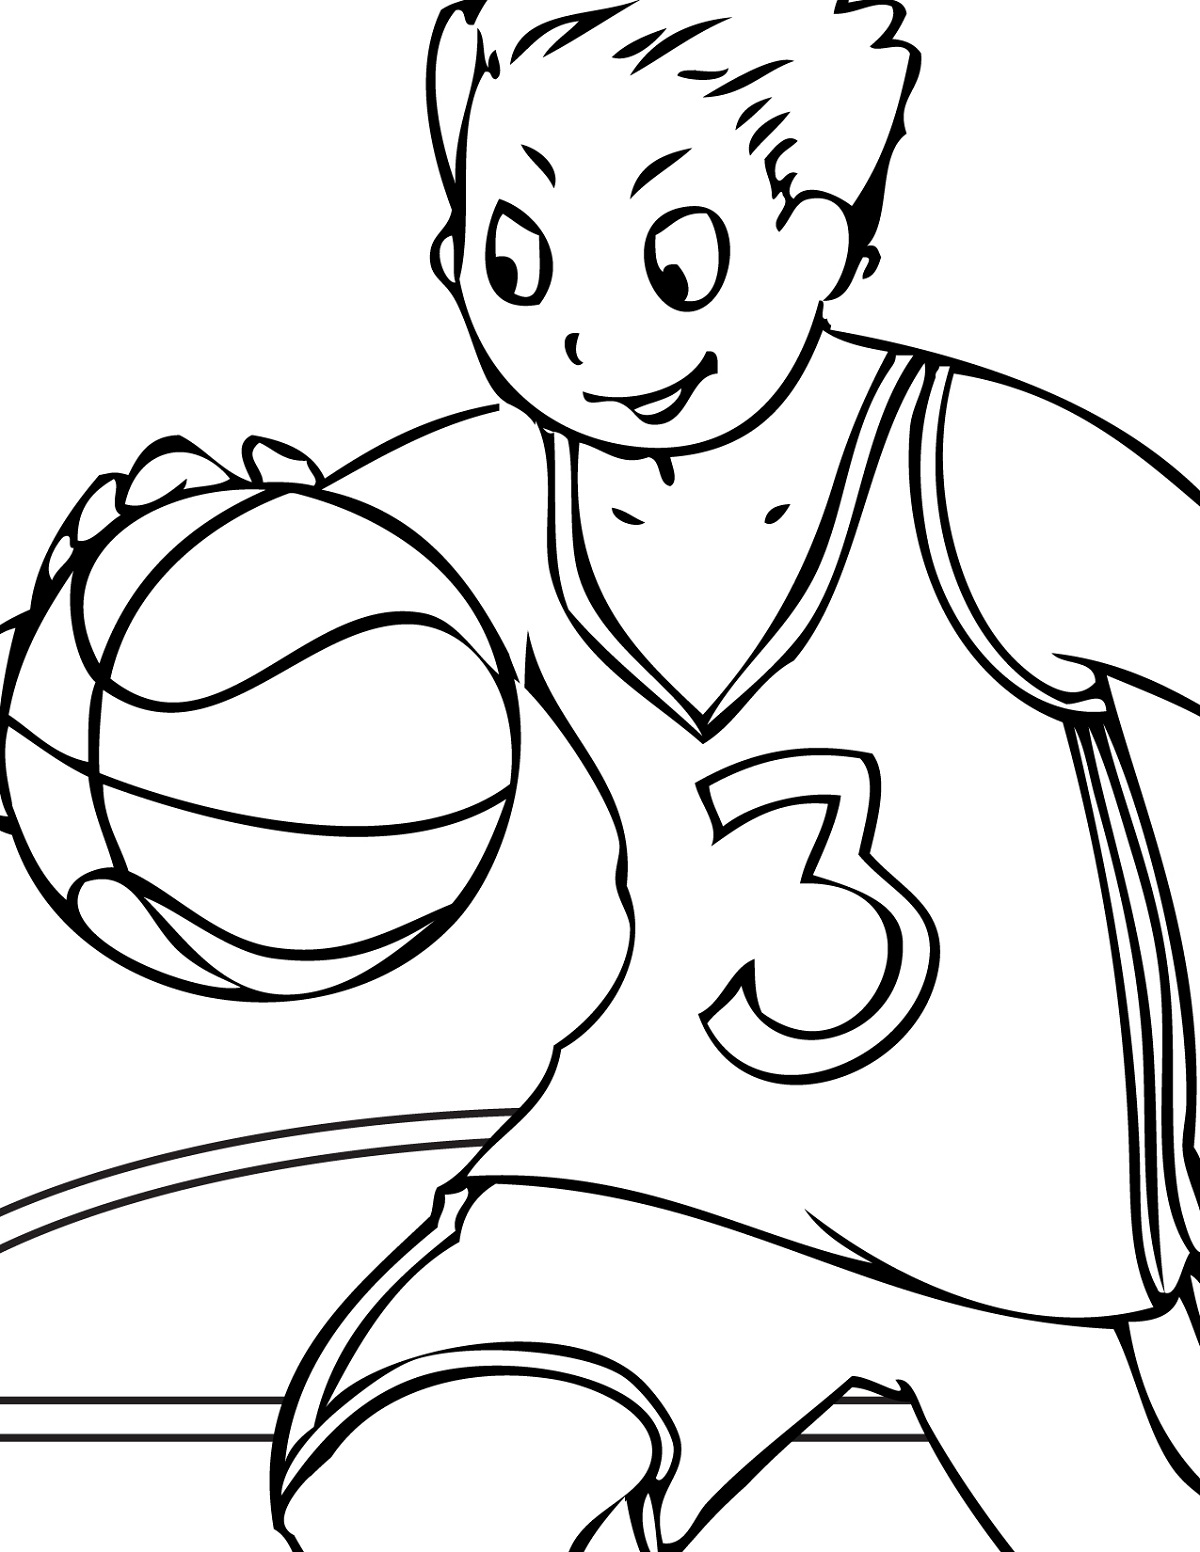 Basketball Activities Worksheet For Kids